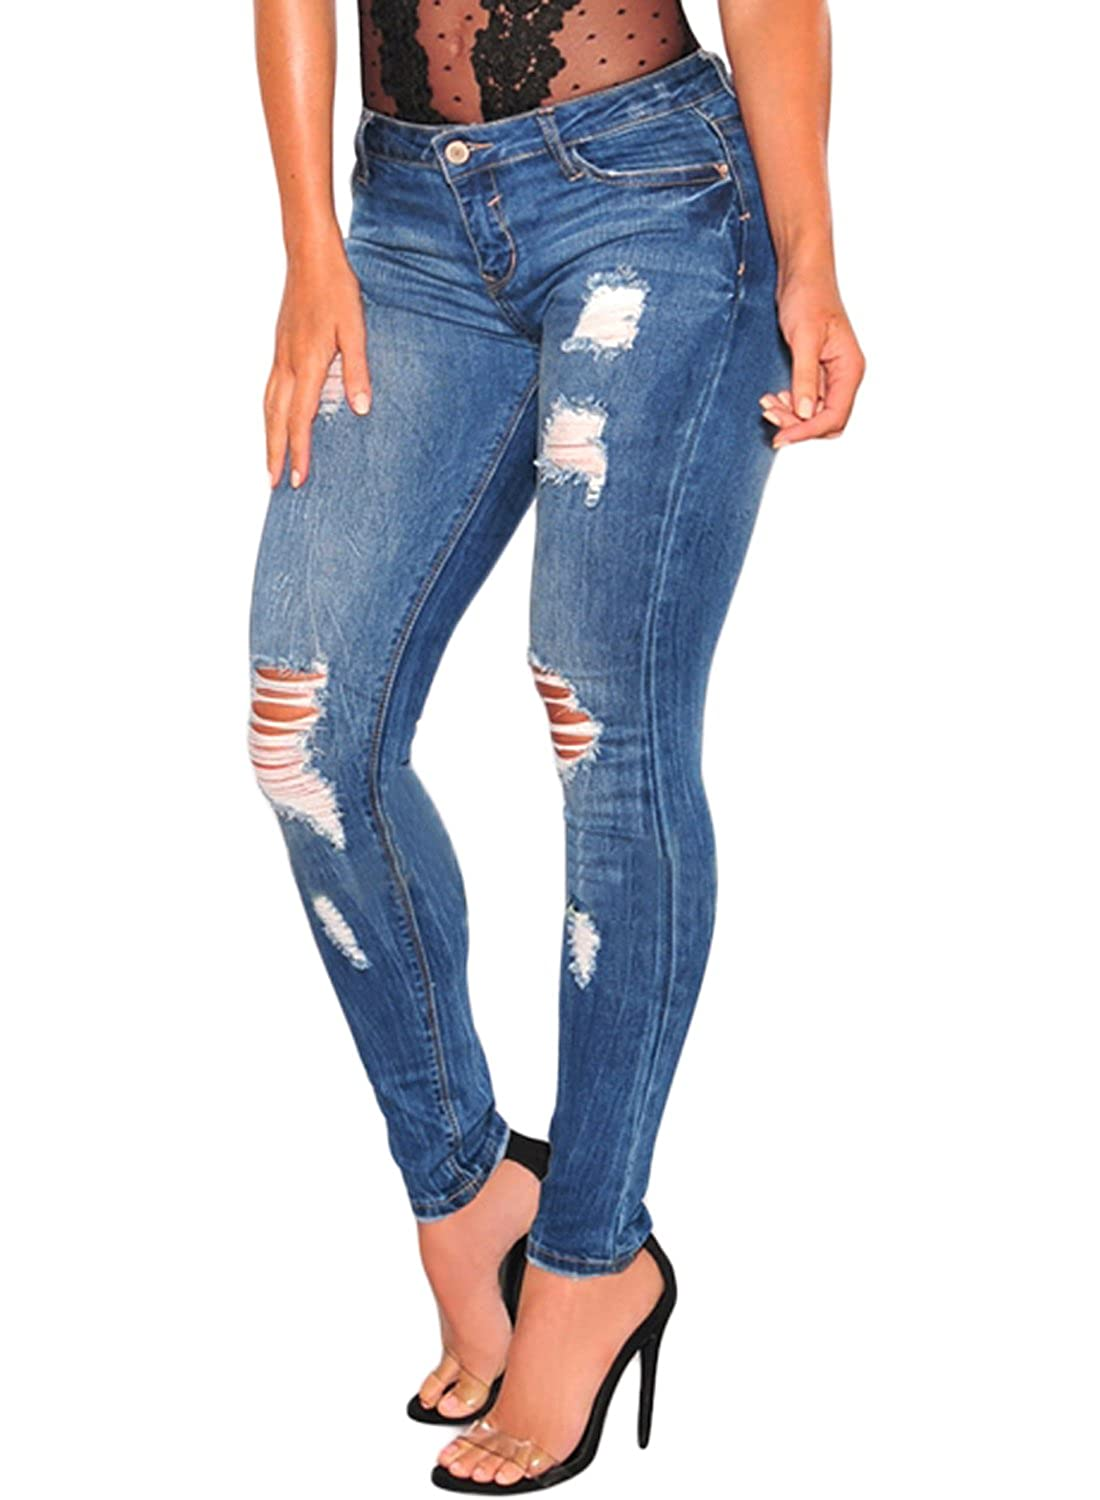 Elapsy Womens Denim Ripped Skinny Jeans High Waist Ladies Fitted Jeggings Trousers WQ78694